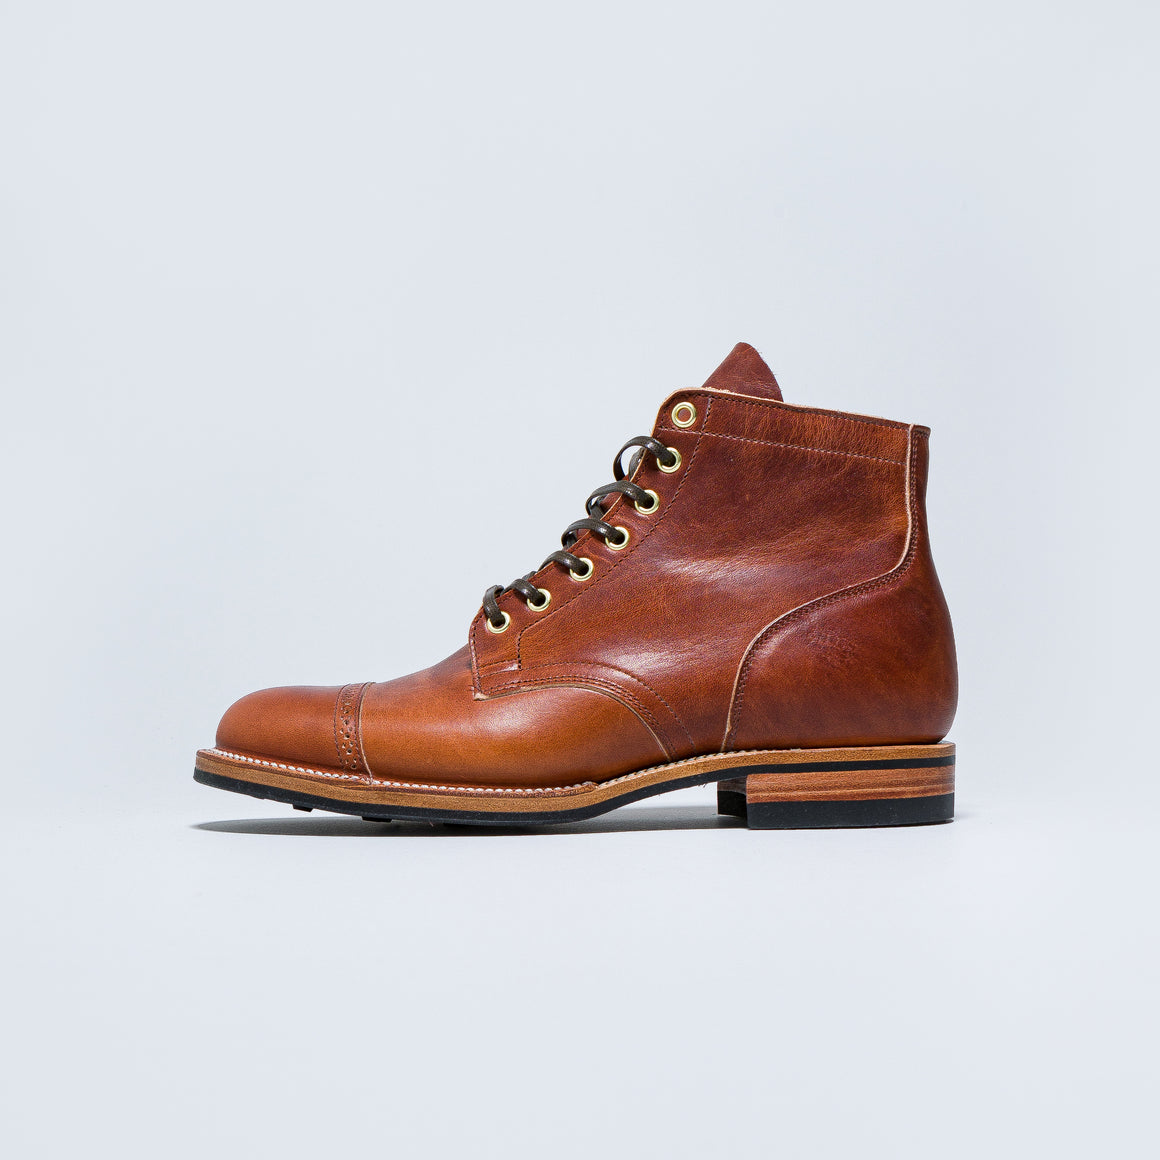 Viberg - Service Boot Toe Cap - Essex Spice - Up There